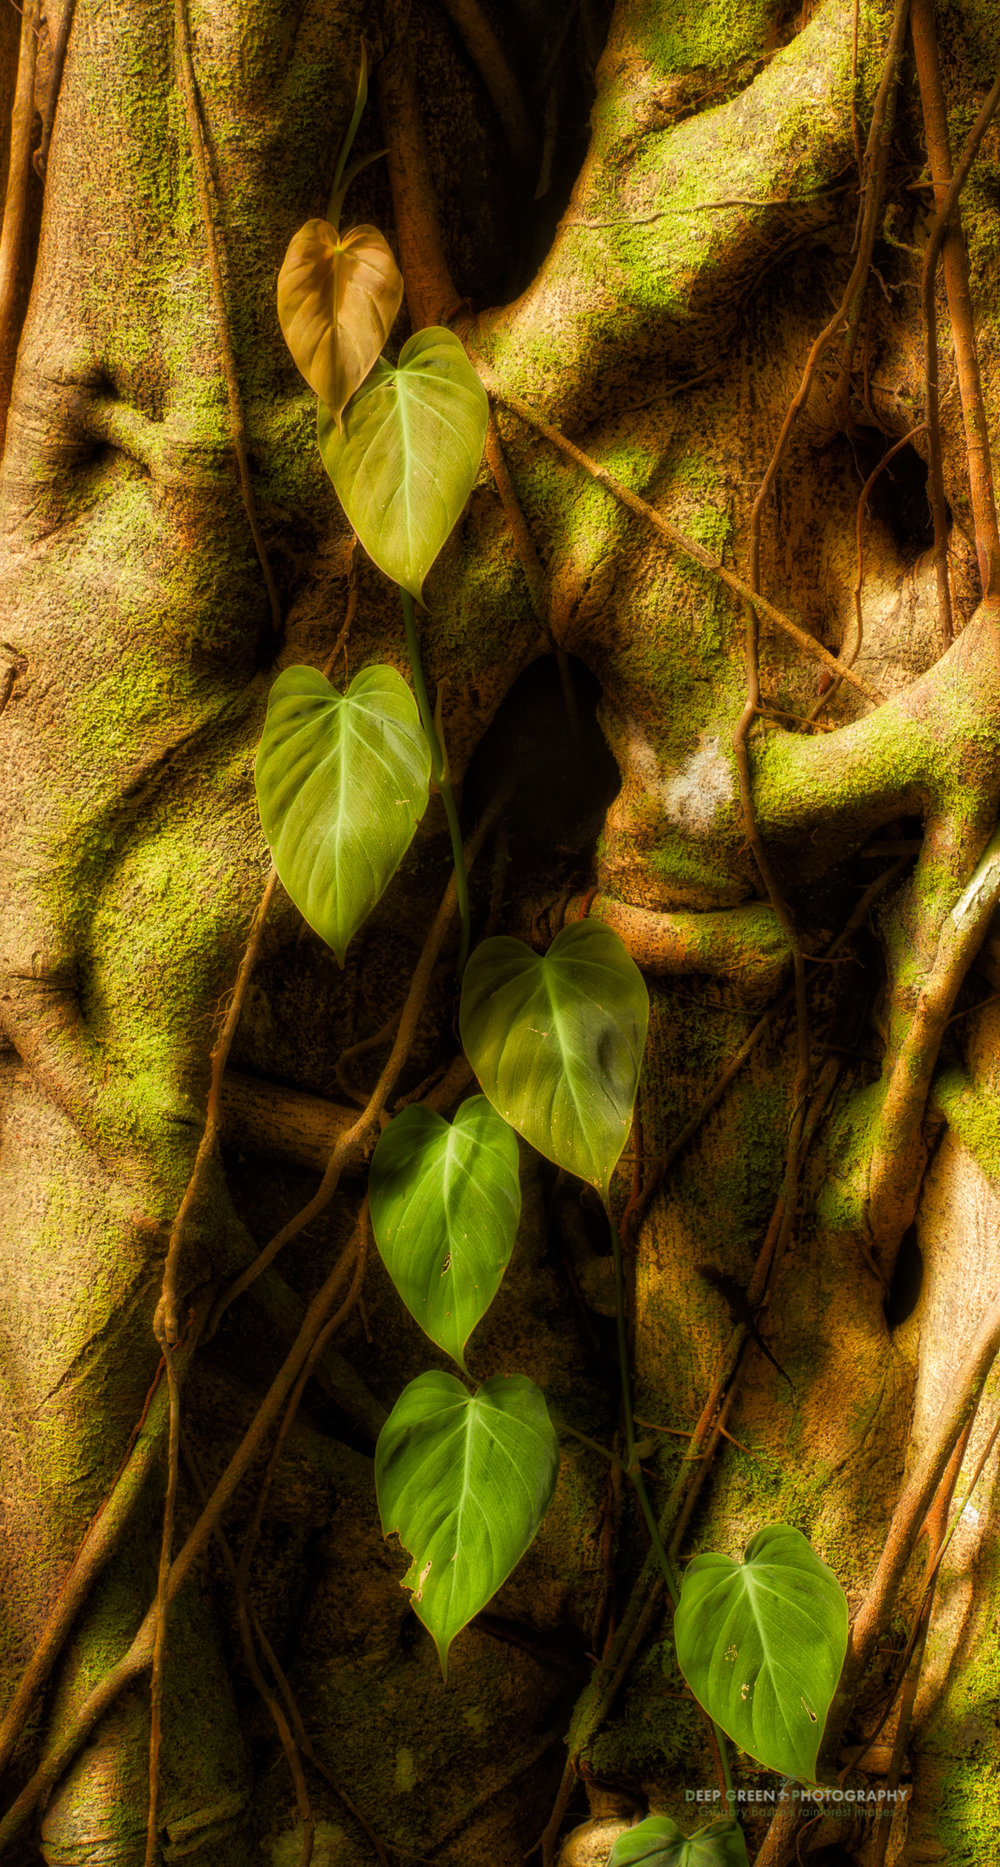 A Philodendron grows on a stangler fig in a Costa Rican lowland rainforest.